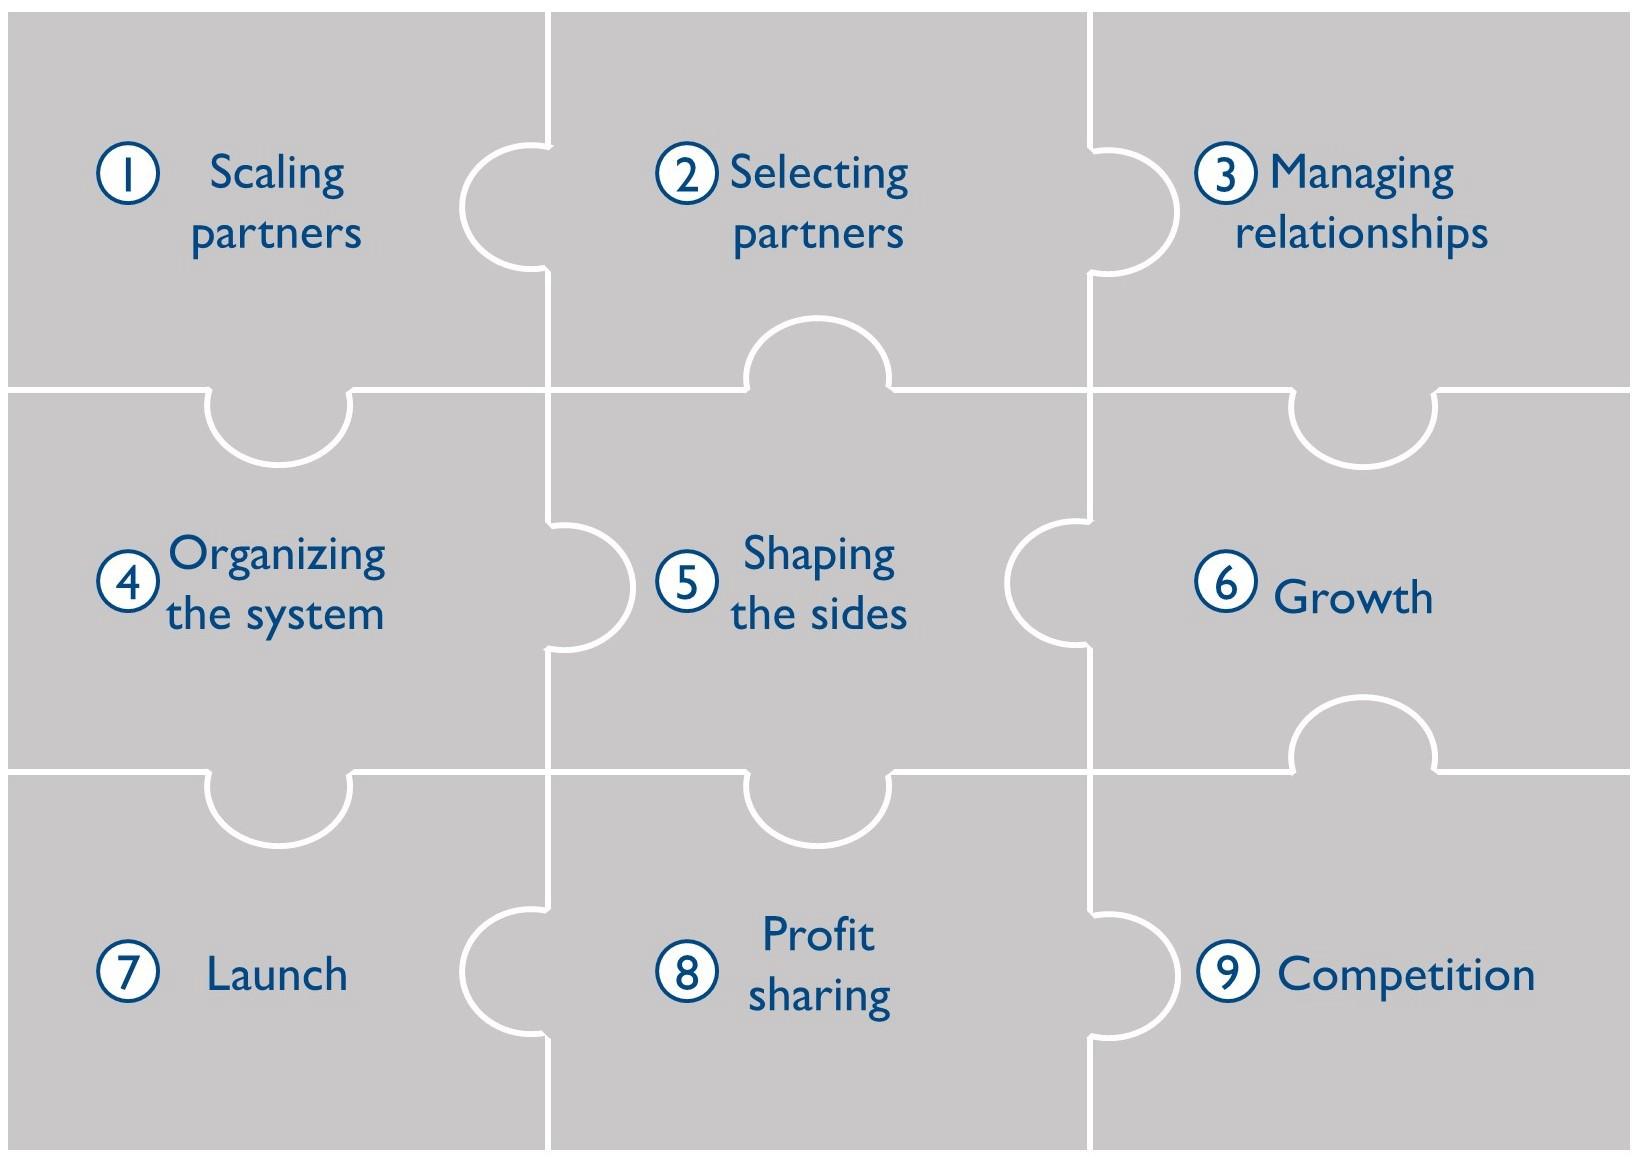 There are nine-9 pillars for a successful business ecosystem of partnerships